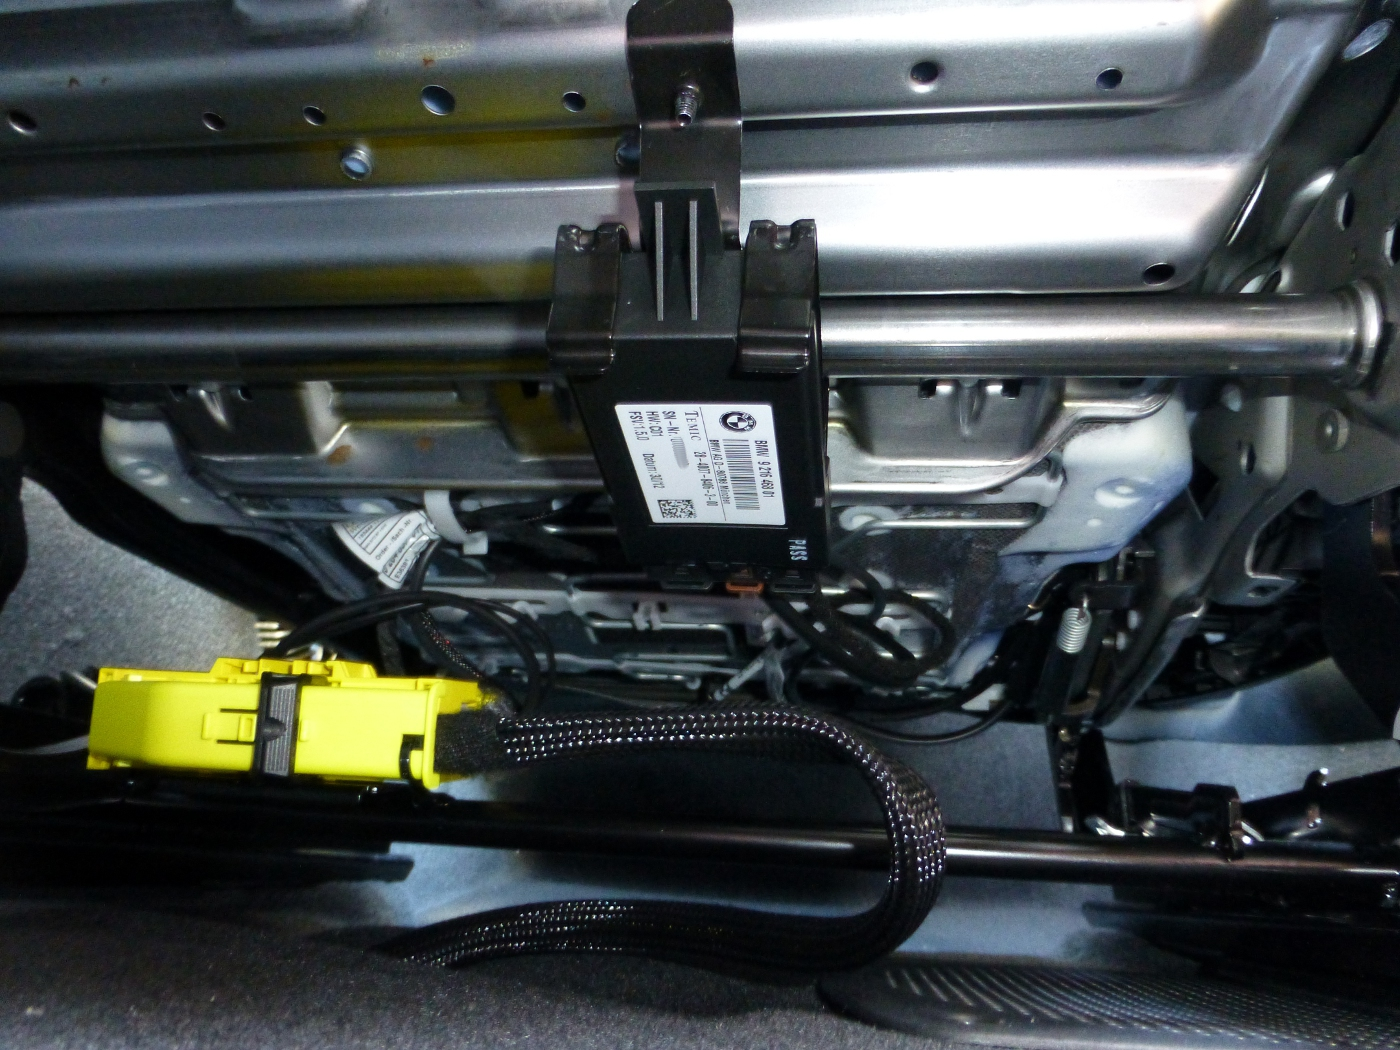 Acura Cl Wiring Diagram Fuse Block besides C Fa additionally Diagram also D Engine Shuts Off While Driving Picture also D Big Problem Srs Light Seatbelt Light Wiring Side Airbags. on honda civic srs wiring diagram